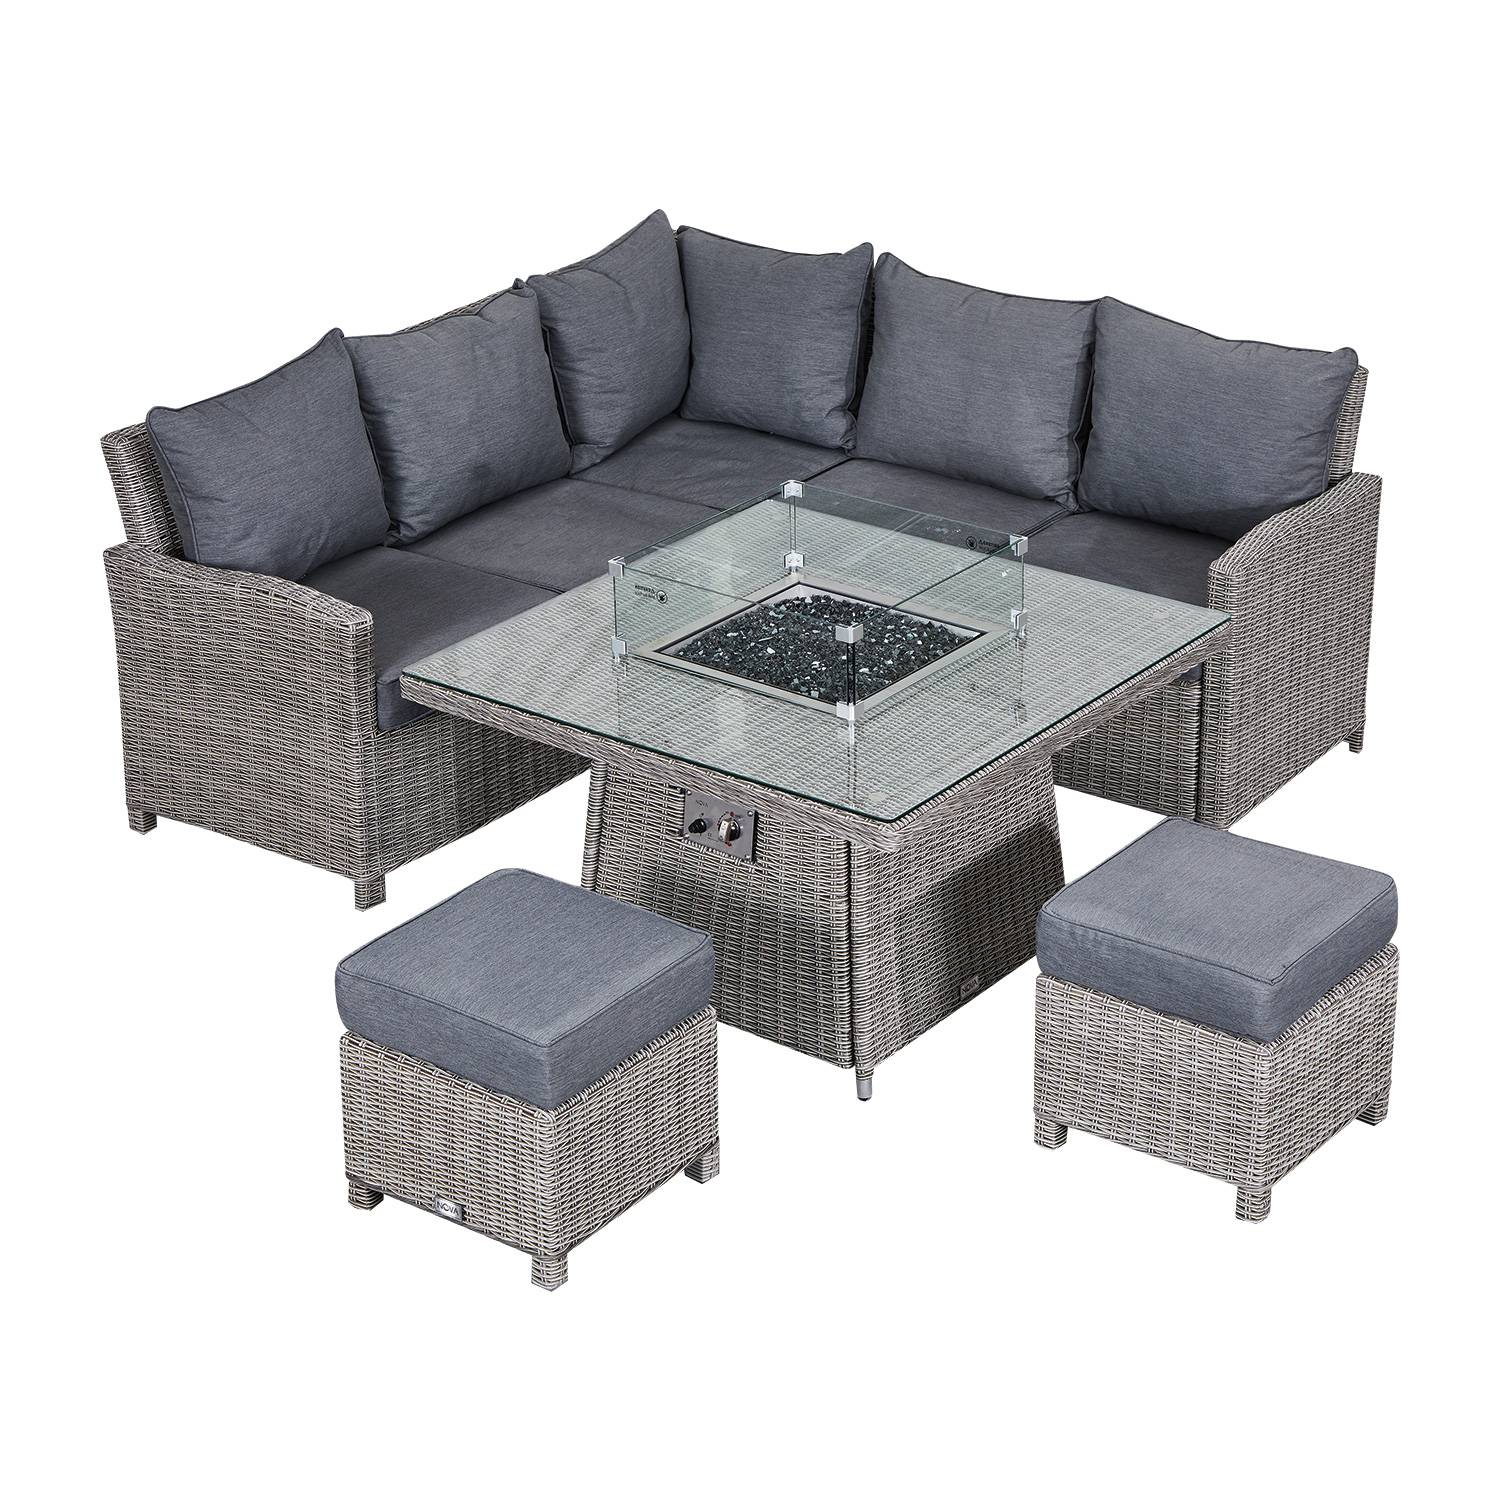 Oakworld Alfresco Heritage Ciara Compact Corner Dining Set with Fire Pit Table   White Wash